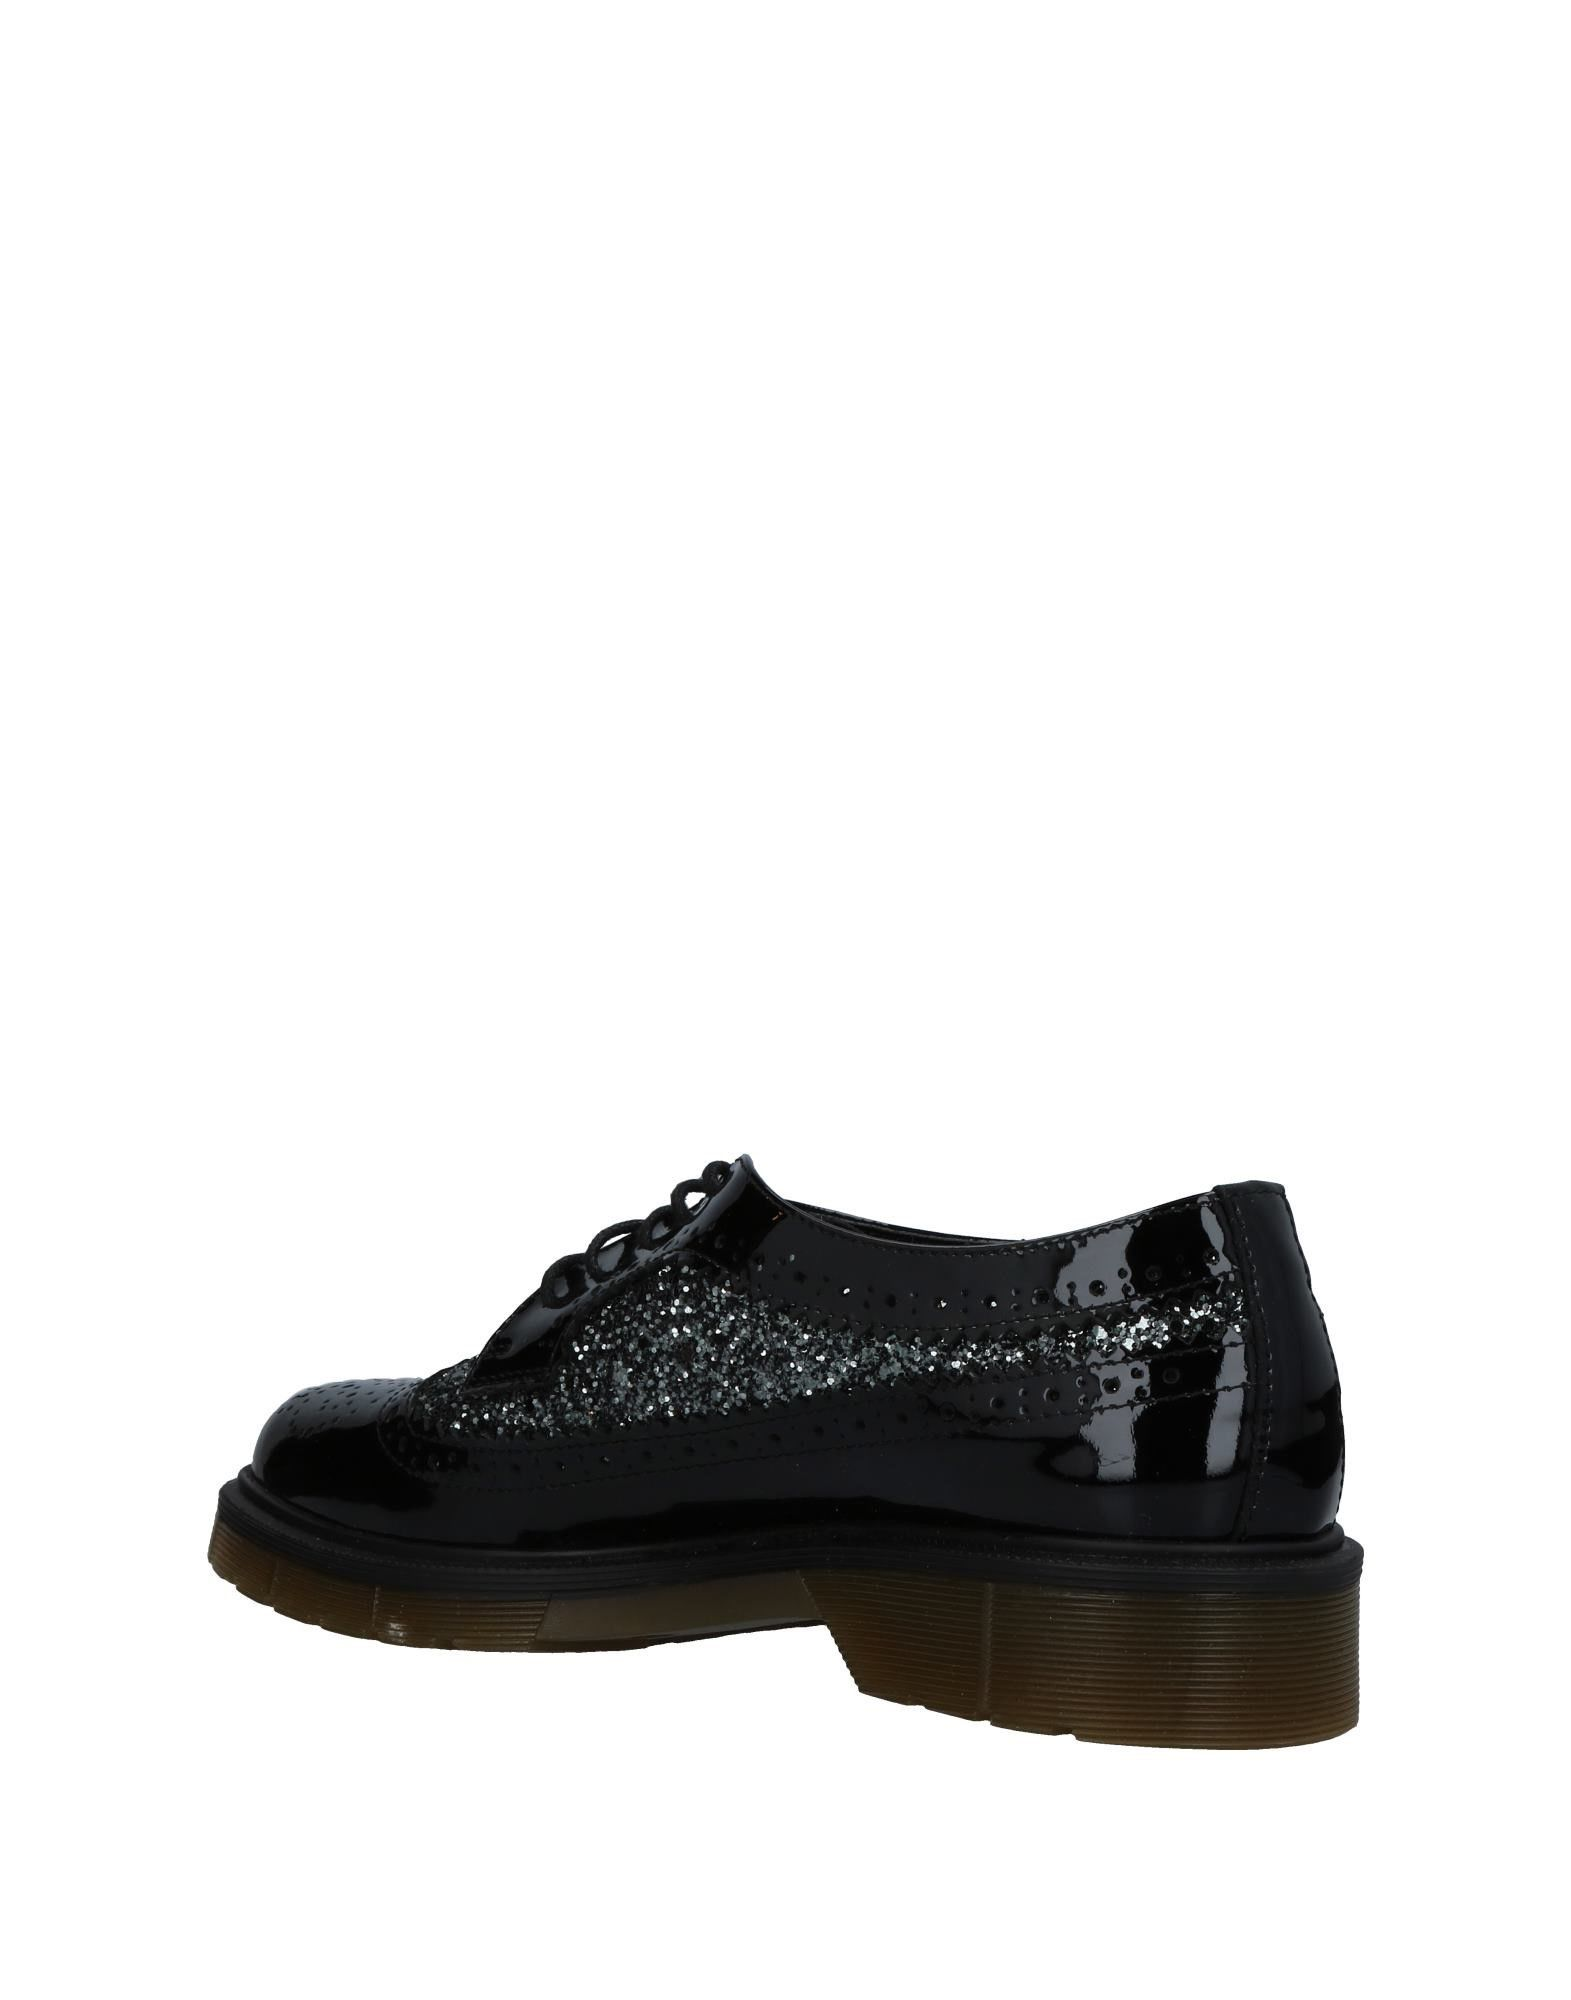 CHAUSSURES - Chaussures à lacetsPenelope Q5f0s